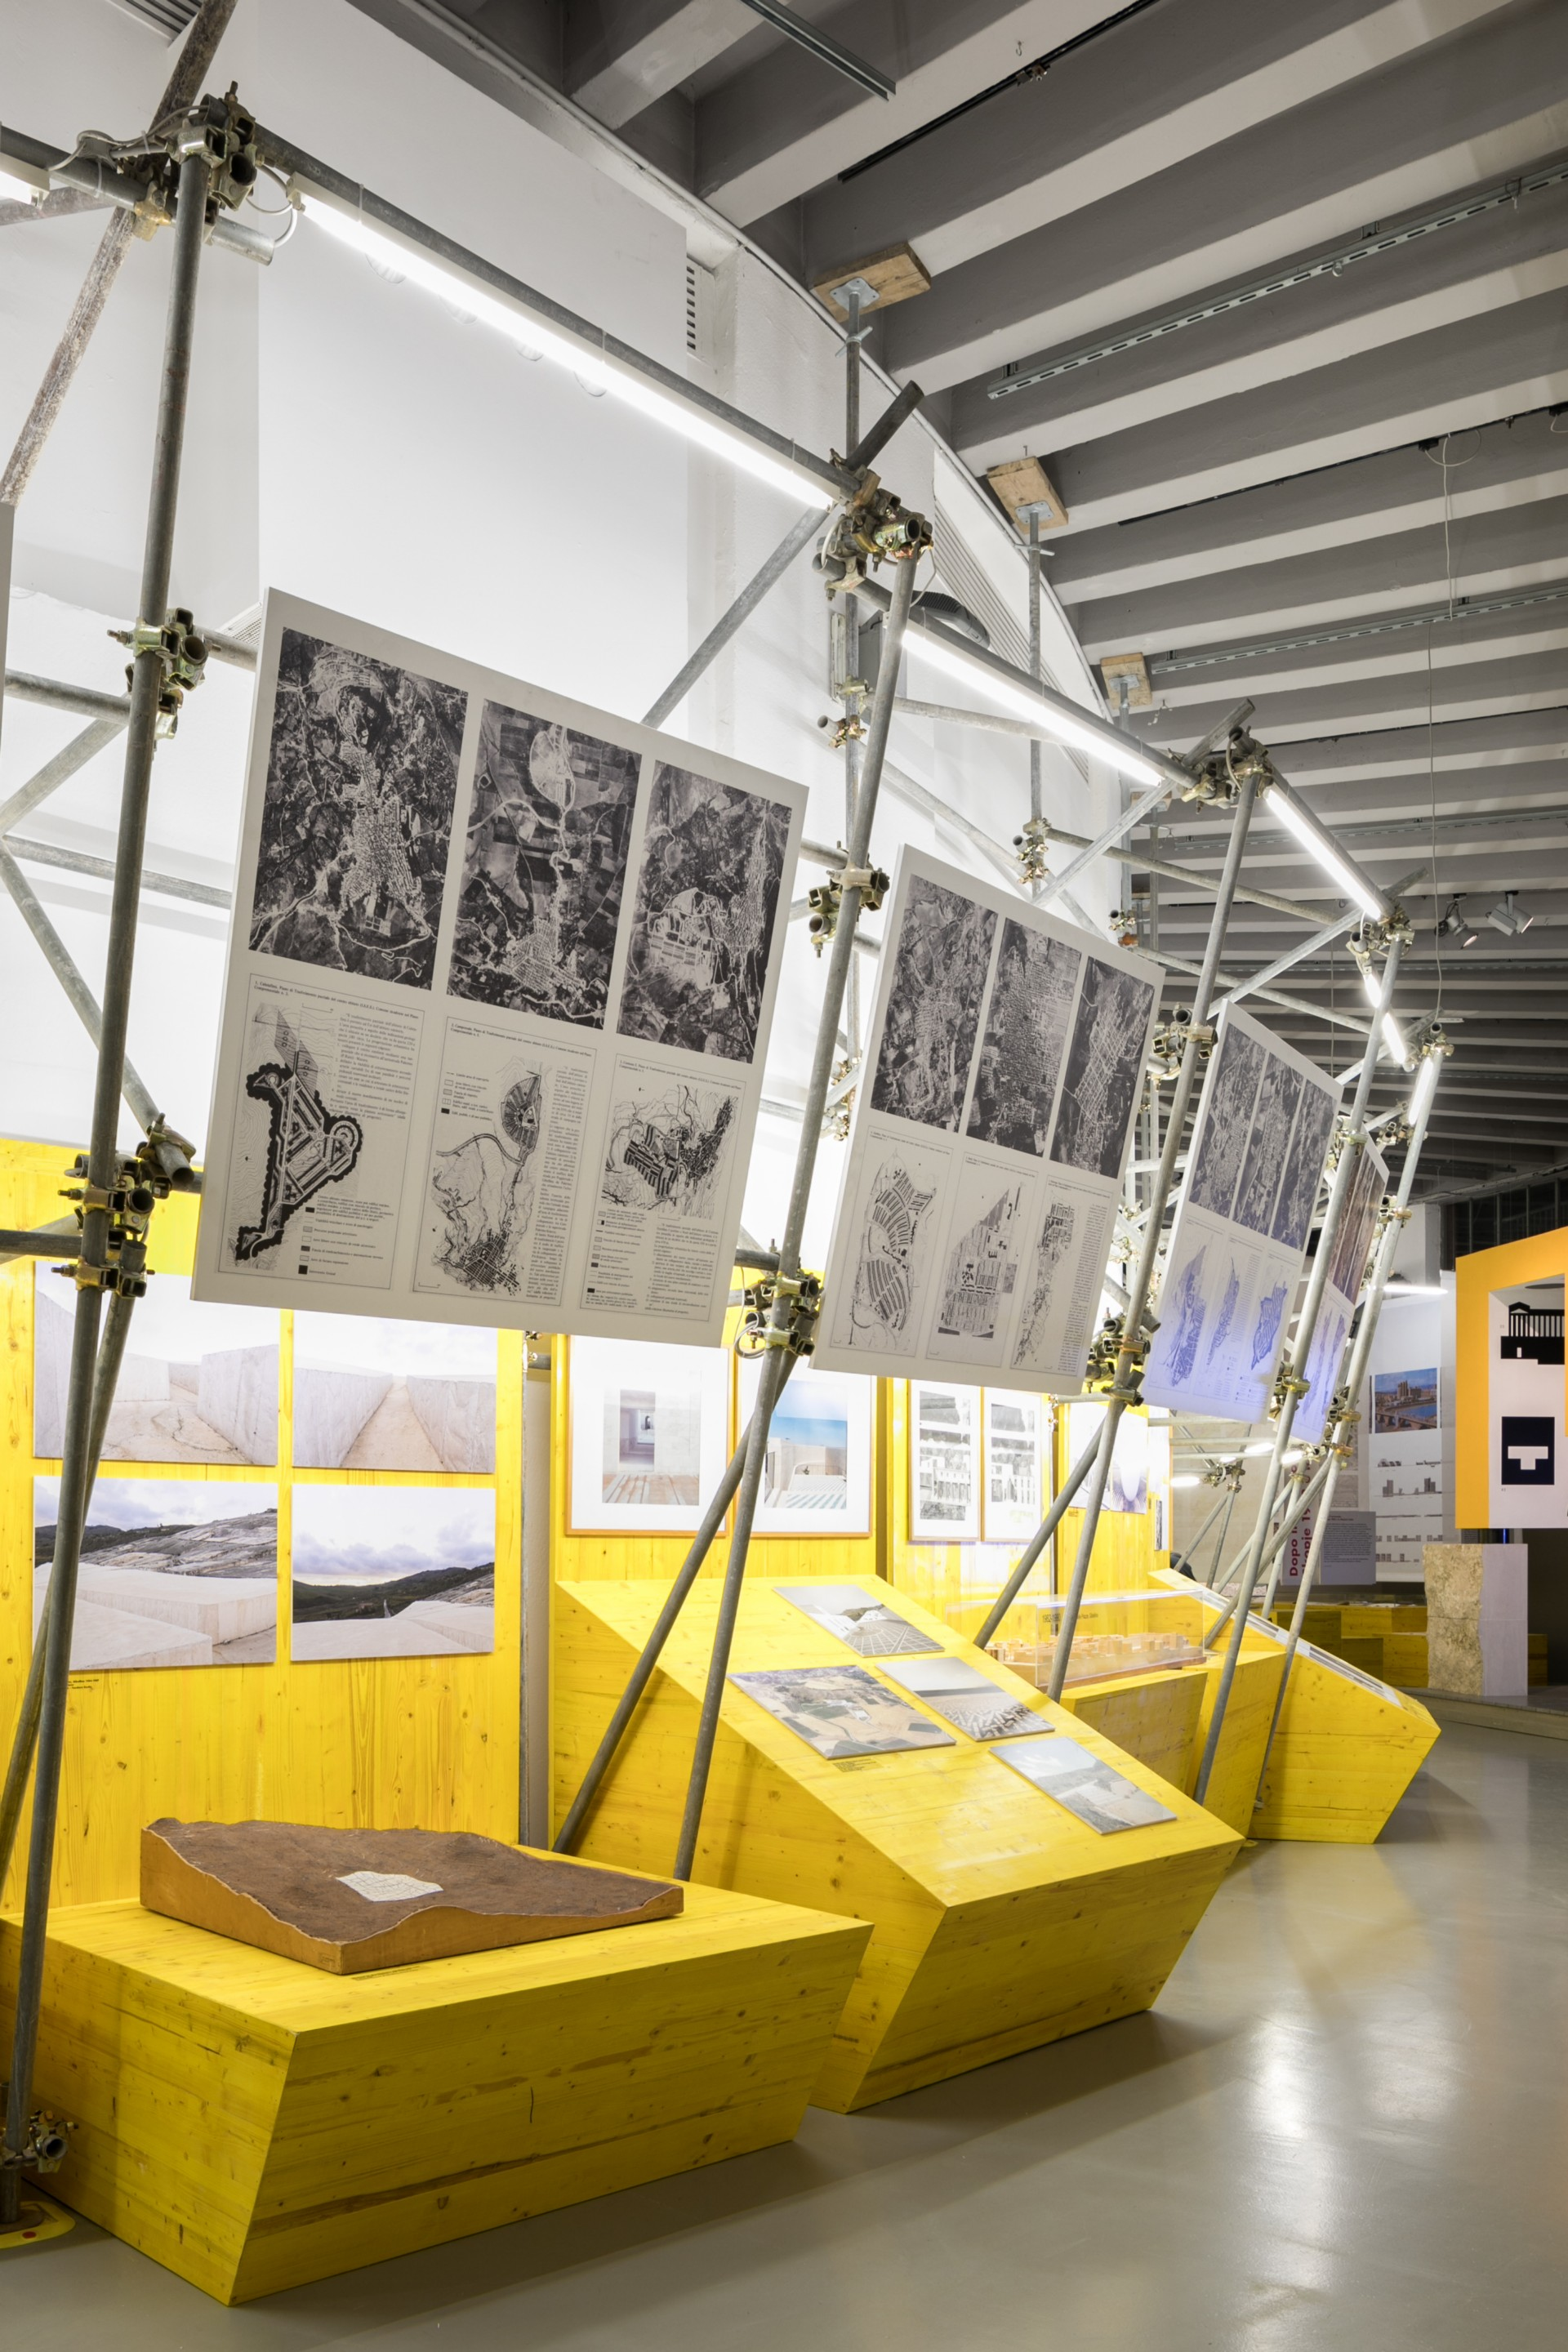 Studio Architettura Paesaggio Milano exhibitions about reconstruction and the built environment